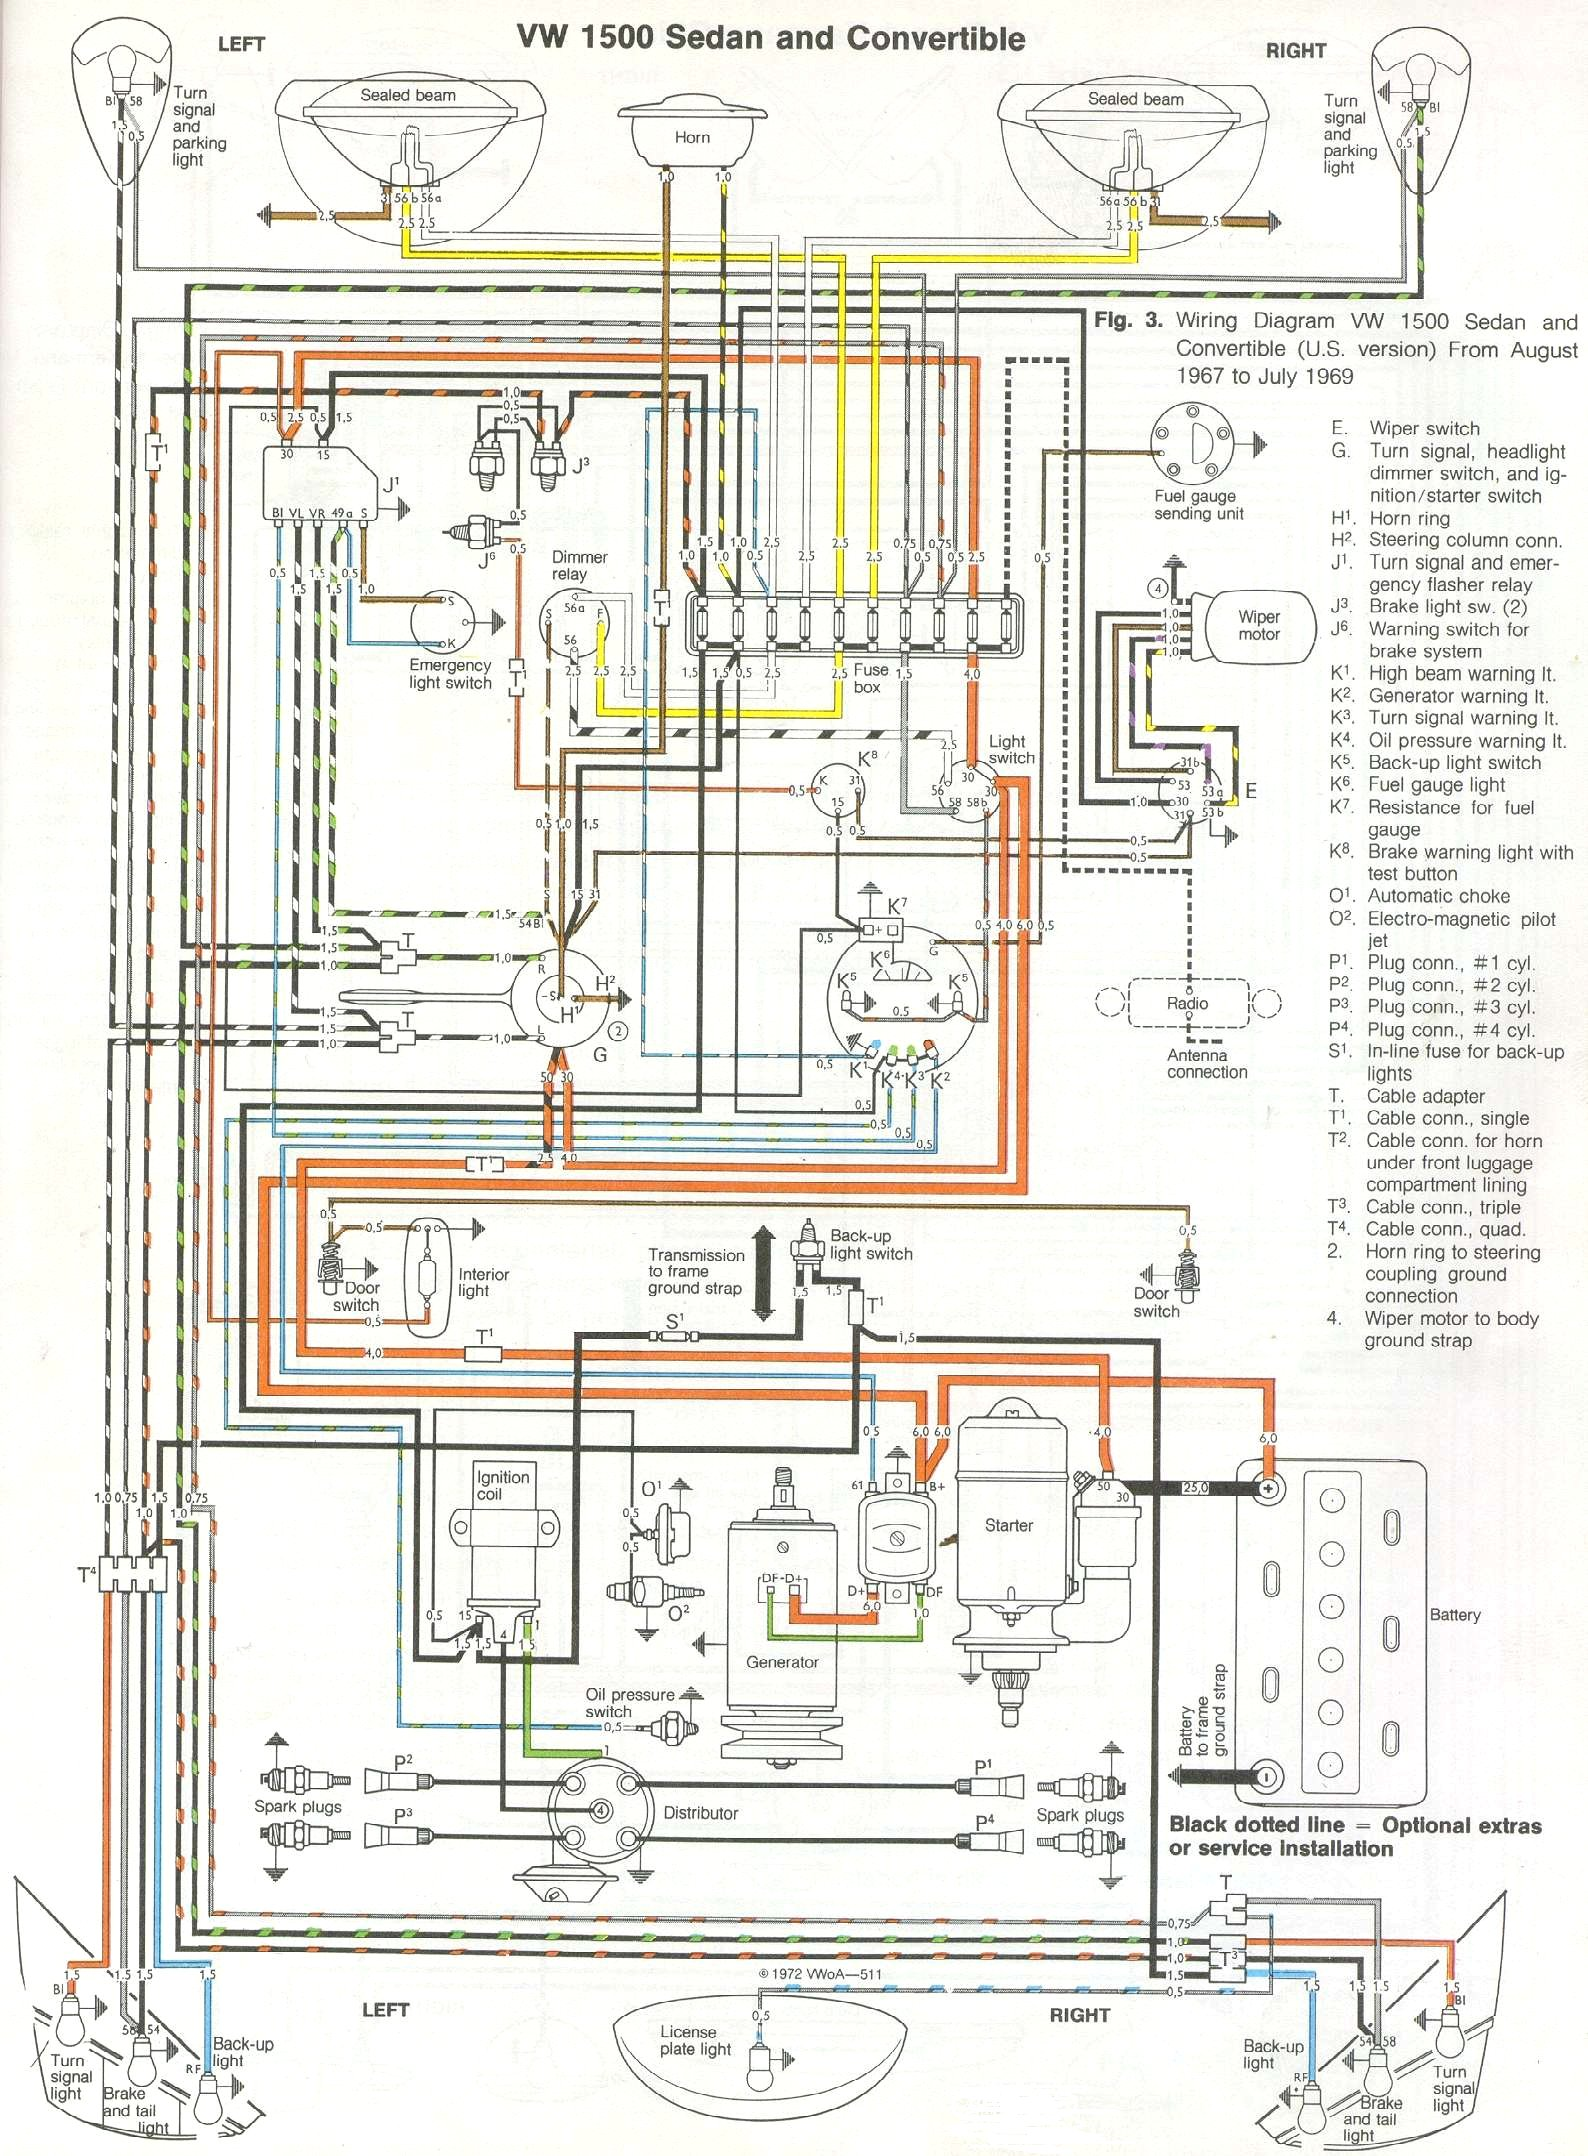 bug_6869 1969 71 beetle wiring diagram thegoldenbug com 1969 vw beetle wiring diagram at bayanpartner.co